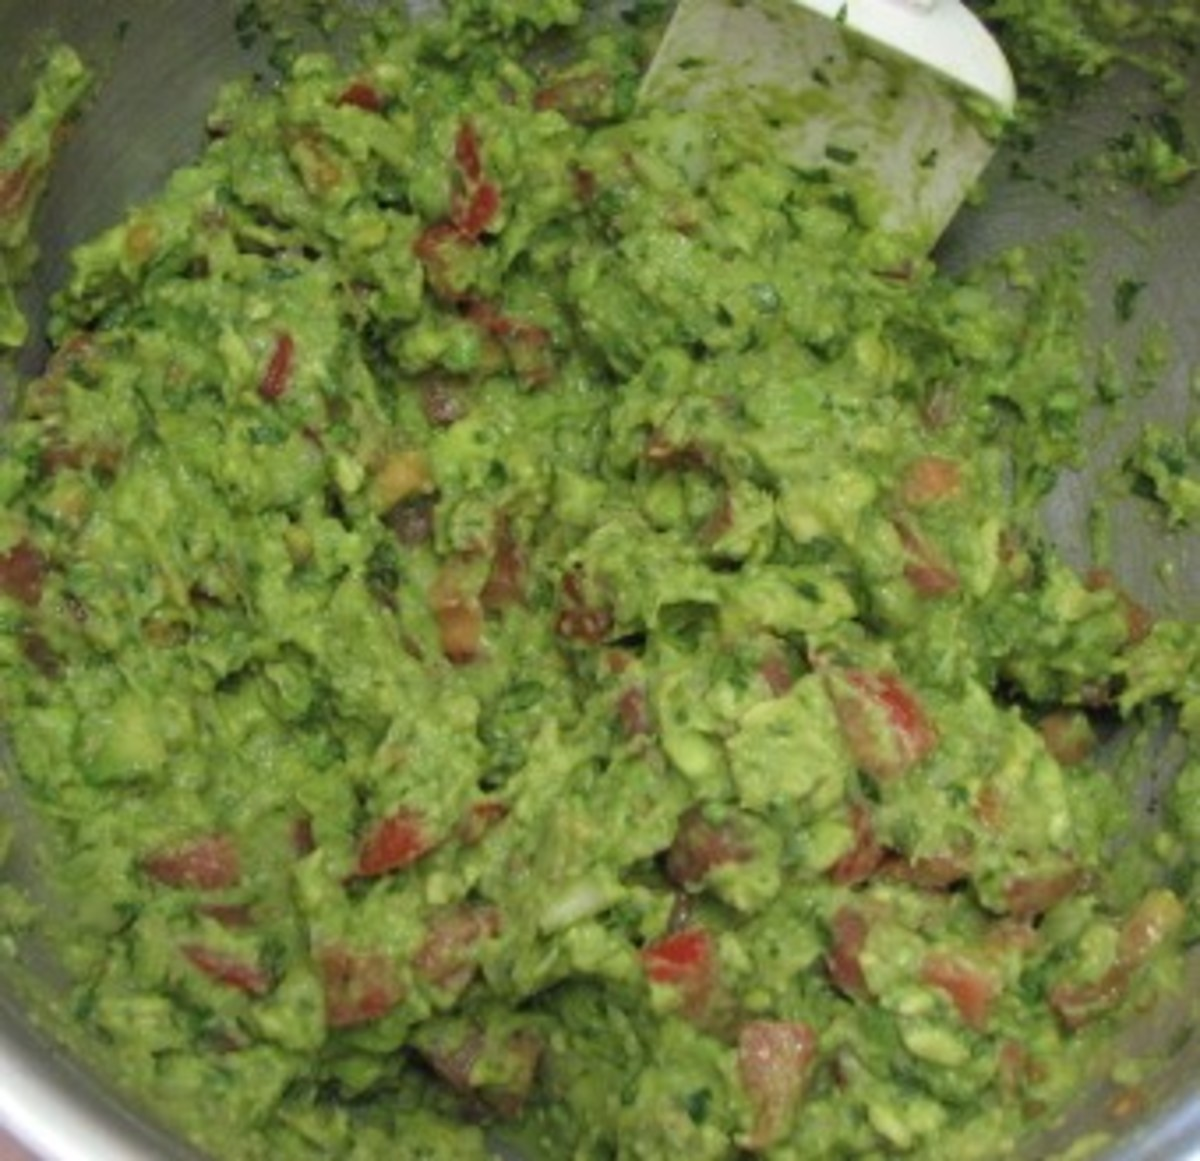 Guacamole without Cilantro is not Guacamole